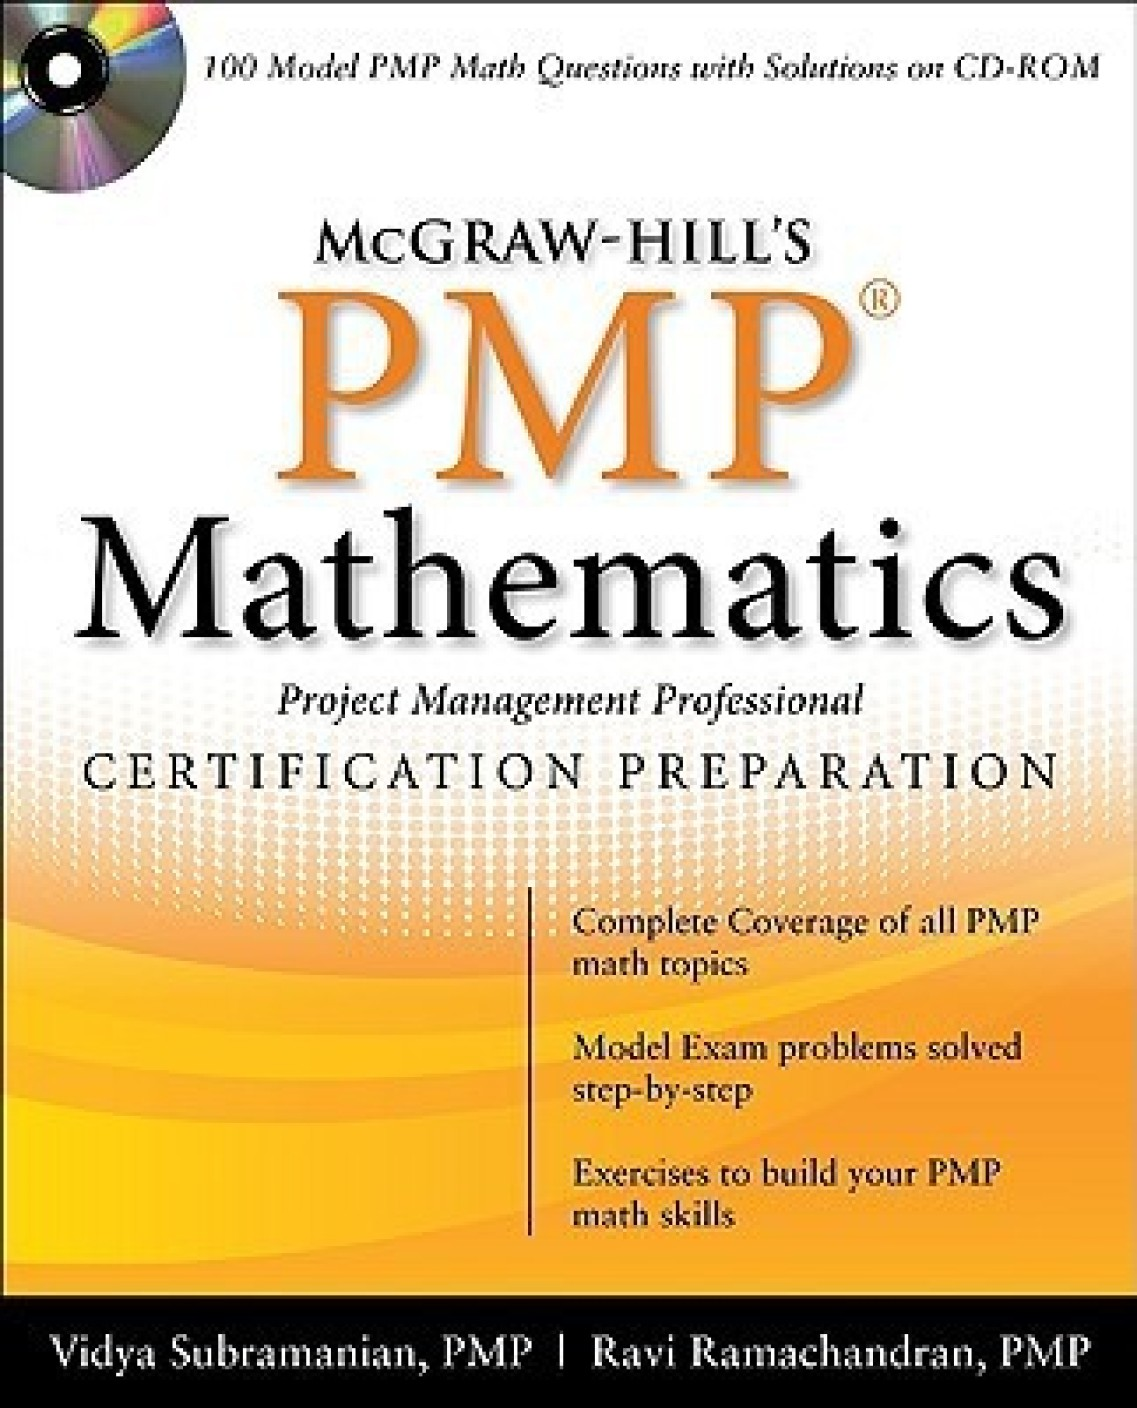 Mcgraw hills pmp certification mathematics with cd rom papcdr add to cart 1betcityfo Gallery